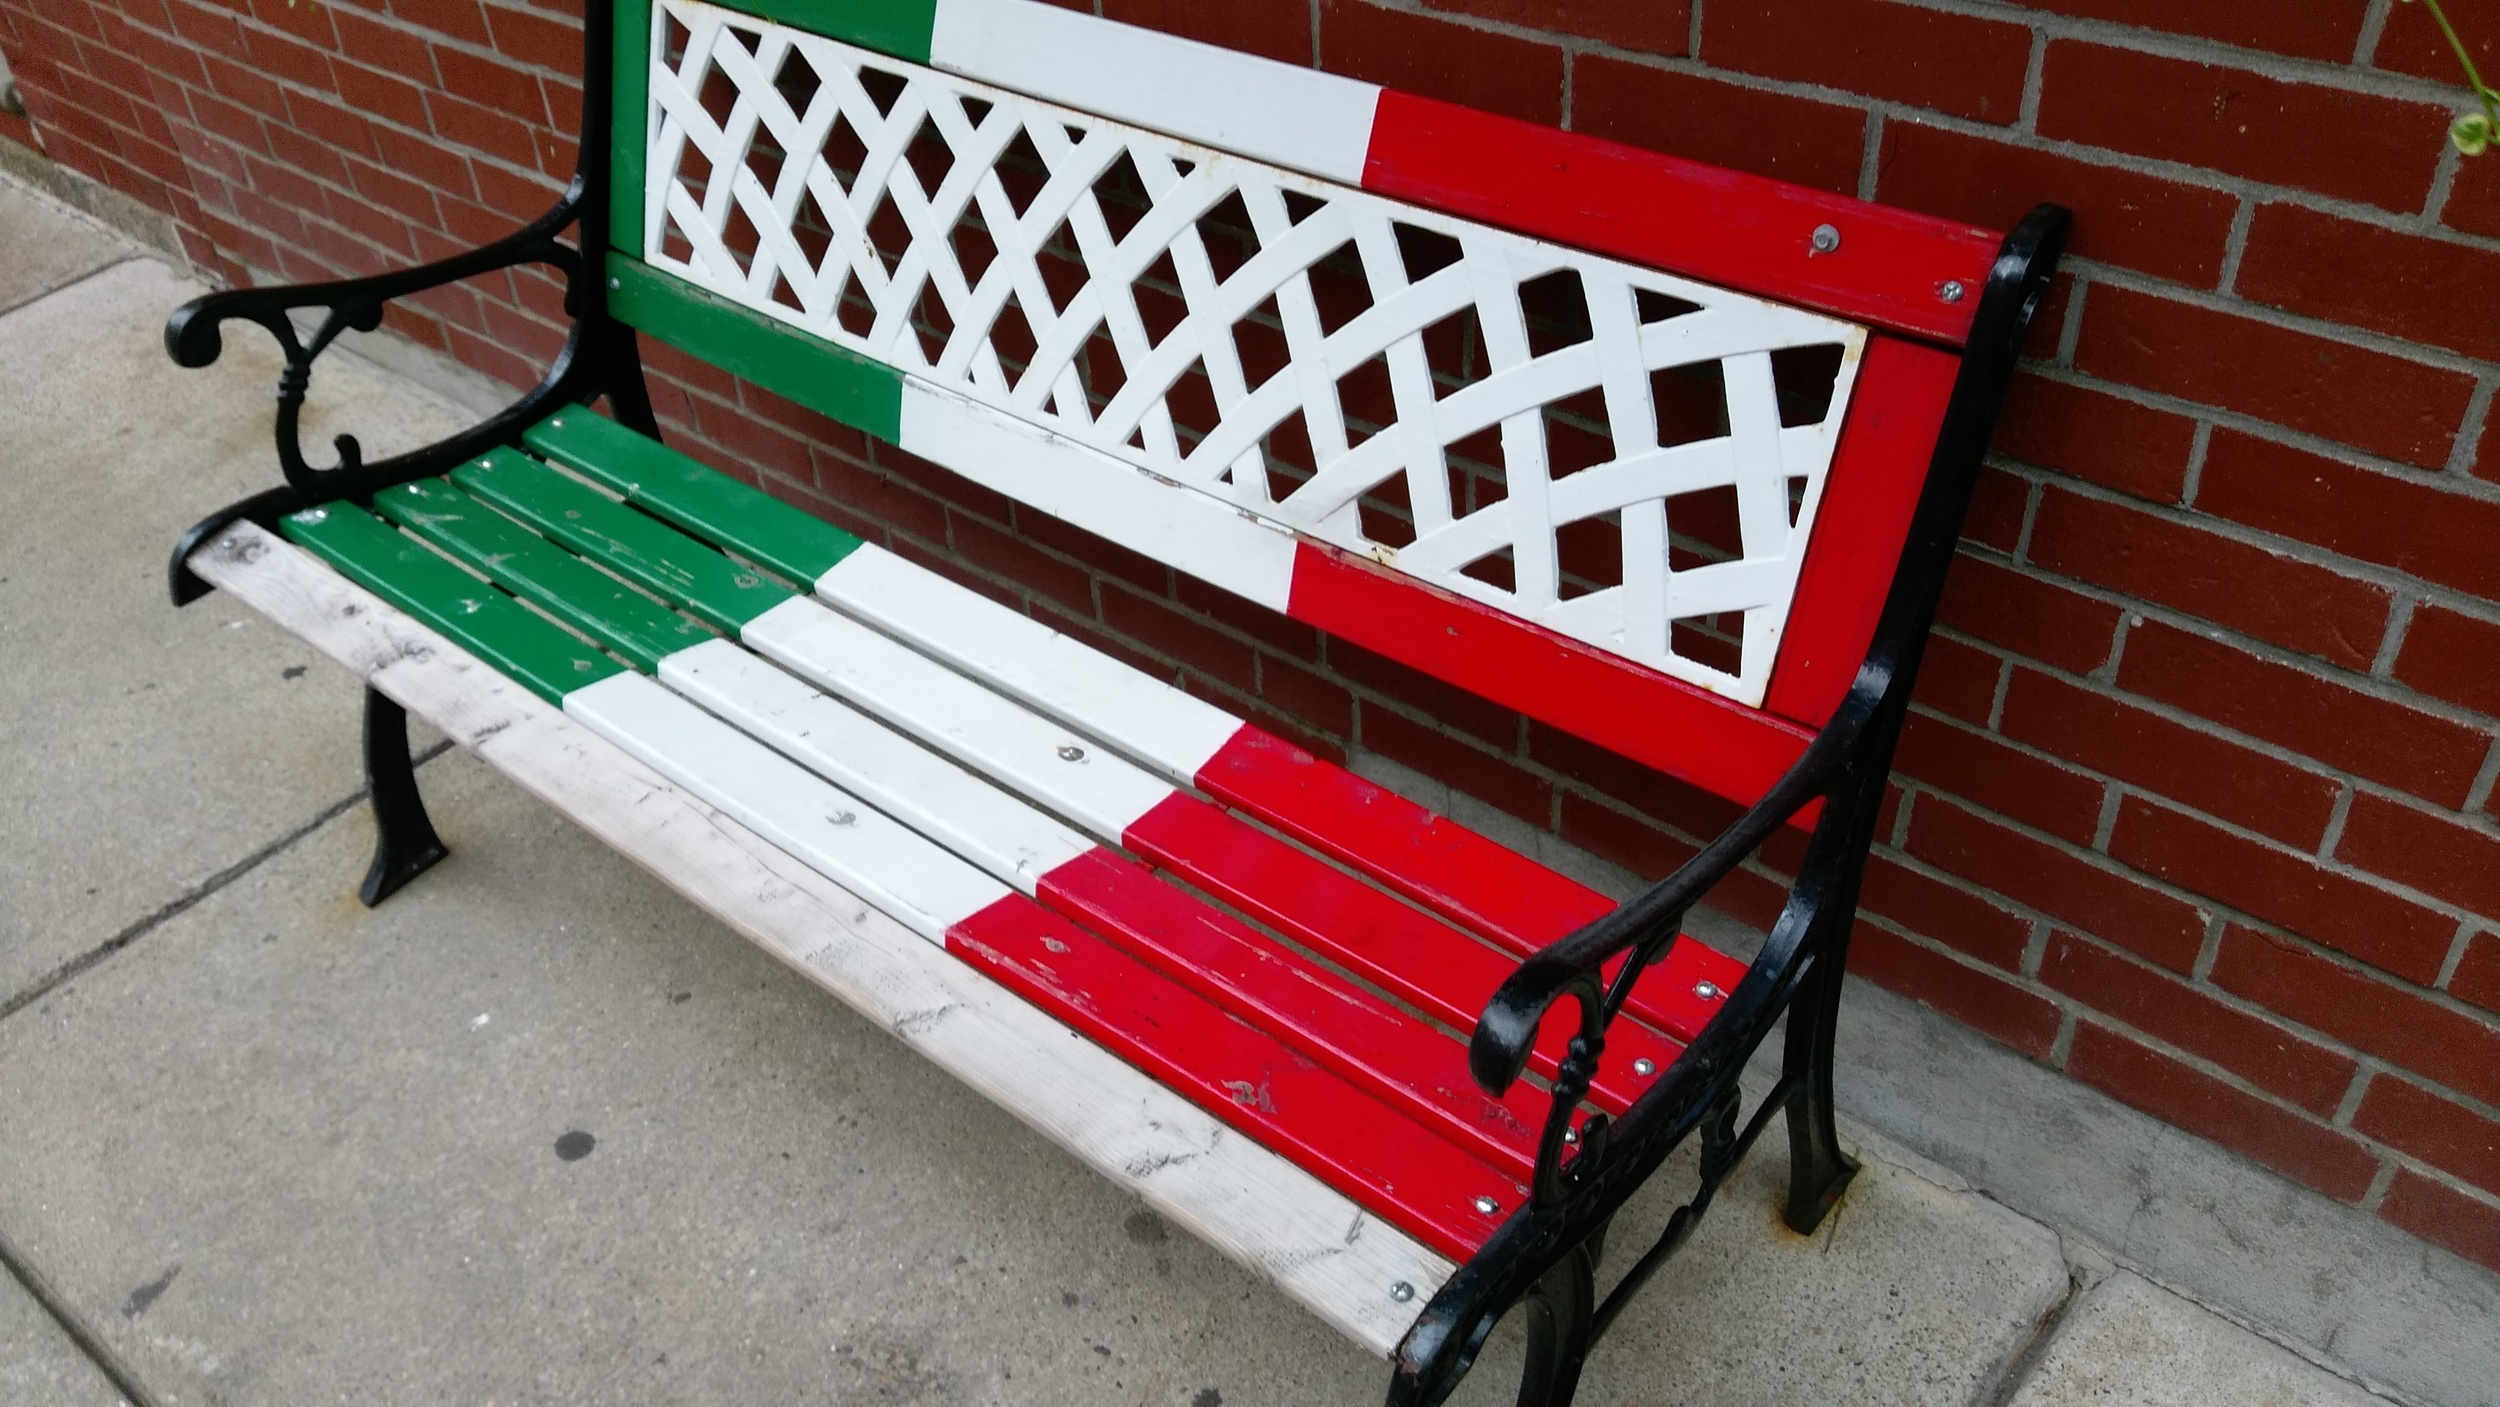 Even the benches in the North End are Italian.